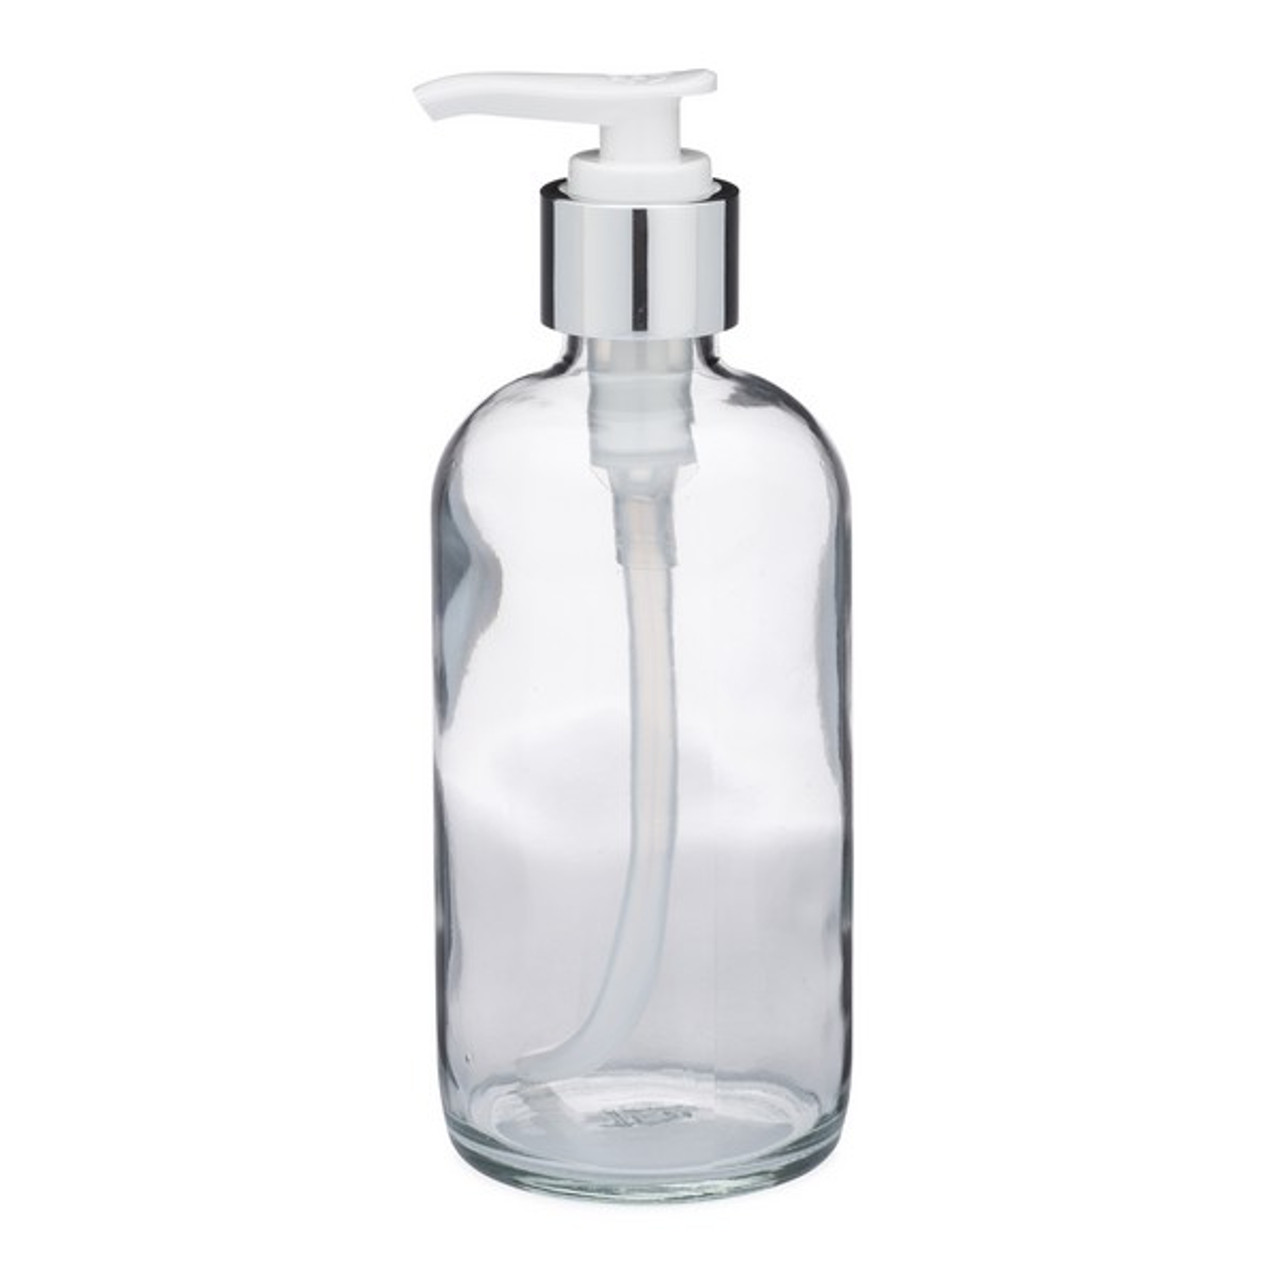 2e9f8aaff7a6 8 oz Clear Glass Boston Round Bottles (Silver PP Lotion Pump) - BC8PS